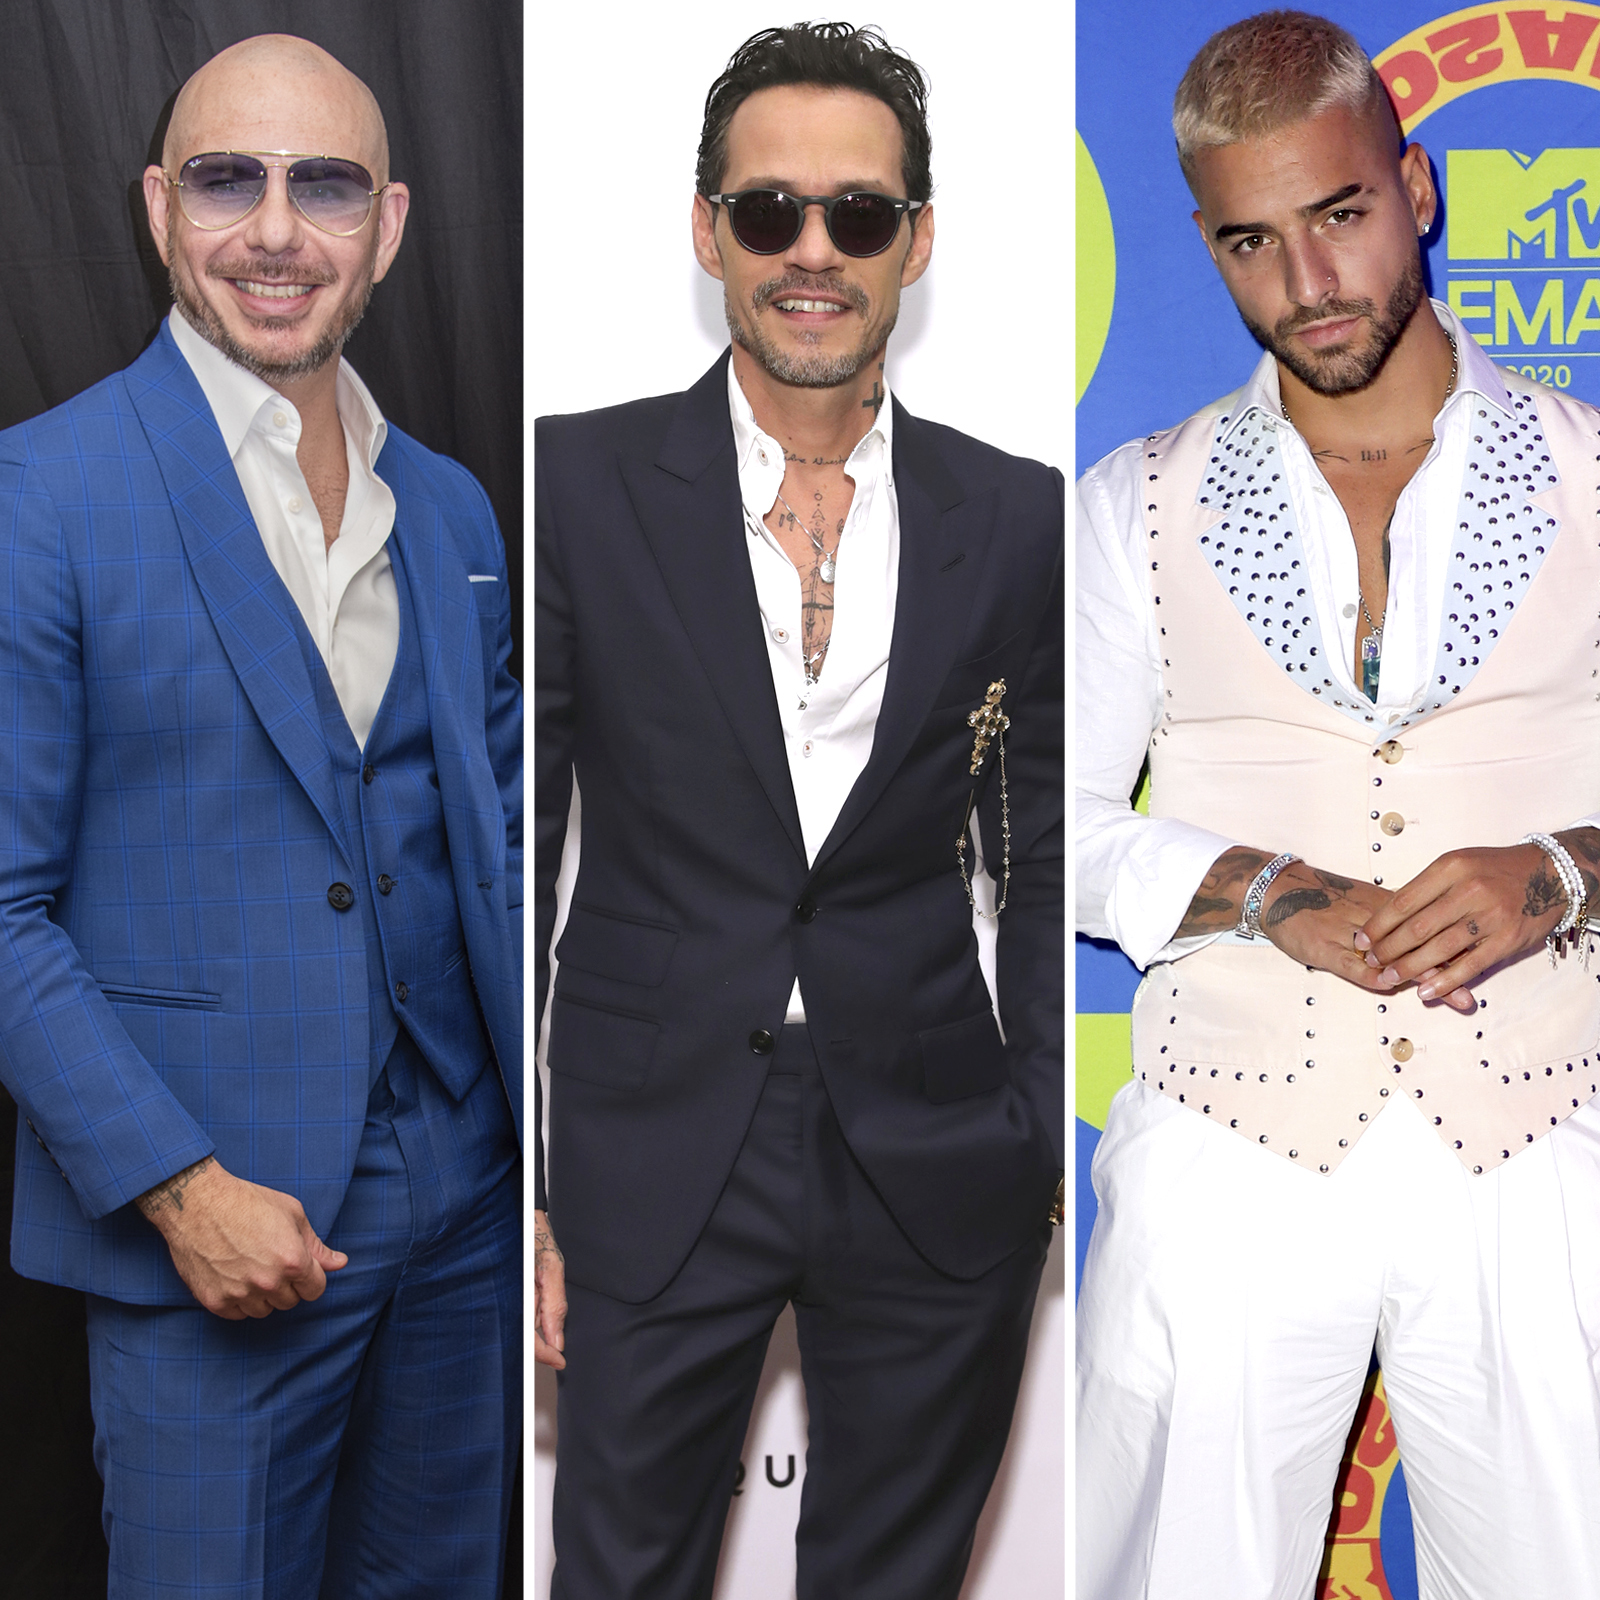 Pitbull, Marc Anthony and Maluma